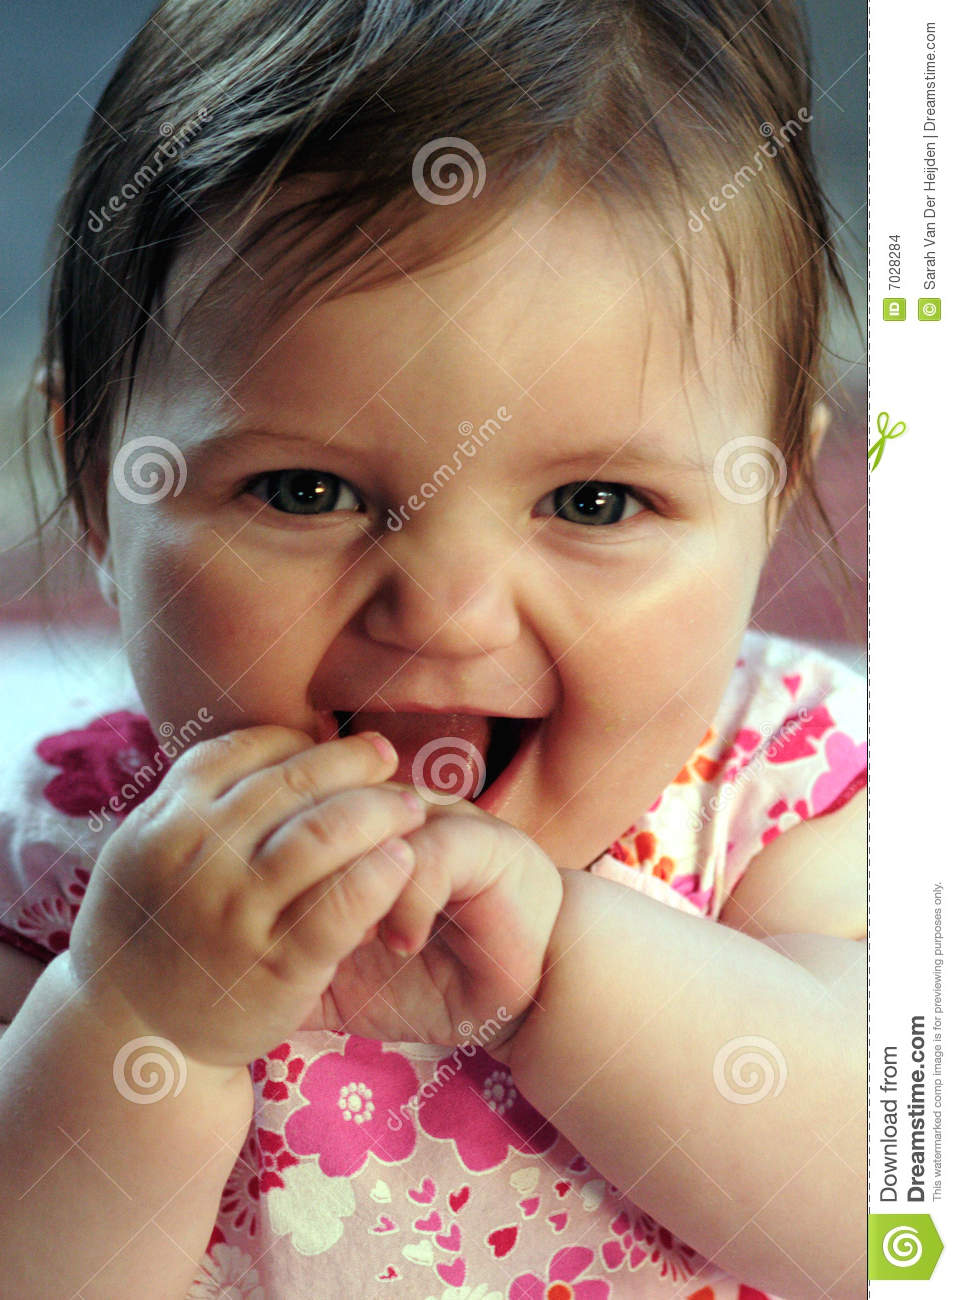 cute baby girl smiling stock photo. image of grinning - 7028284